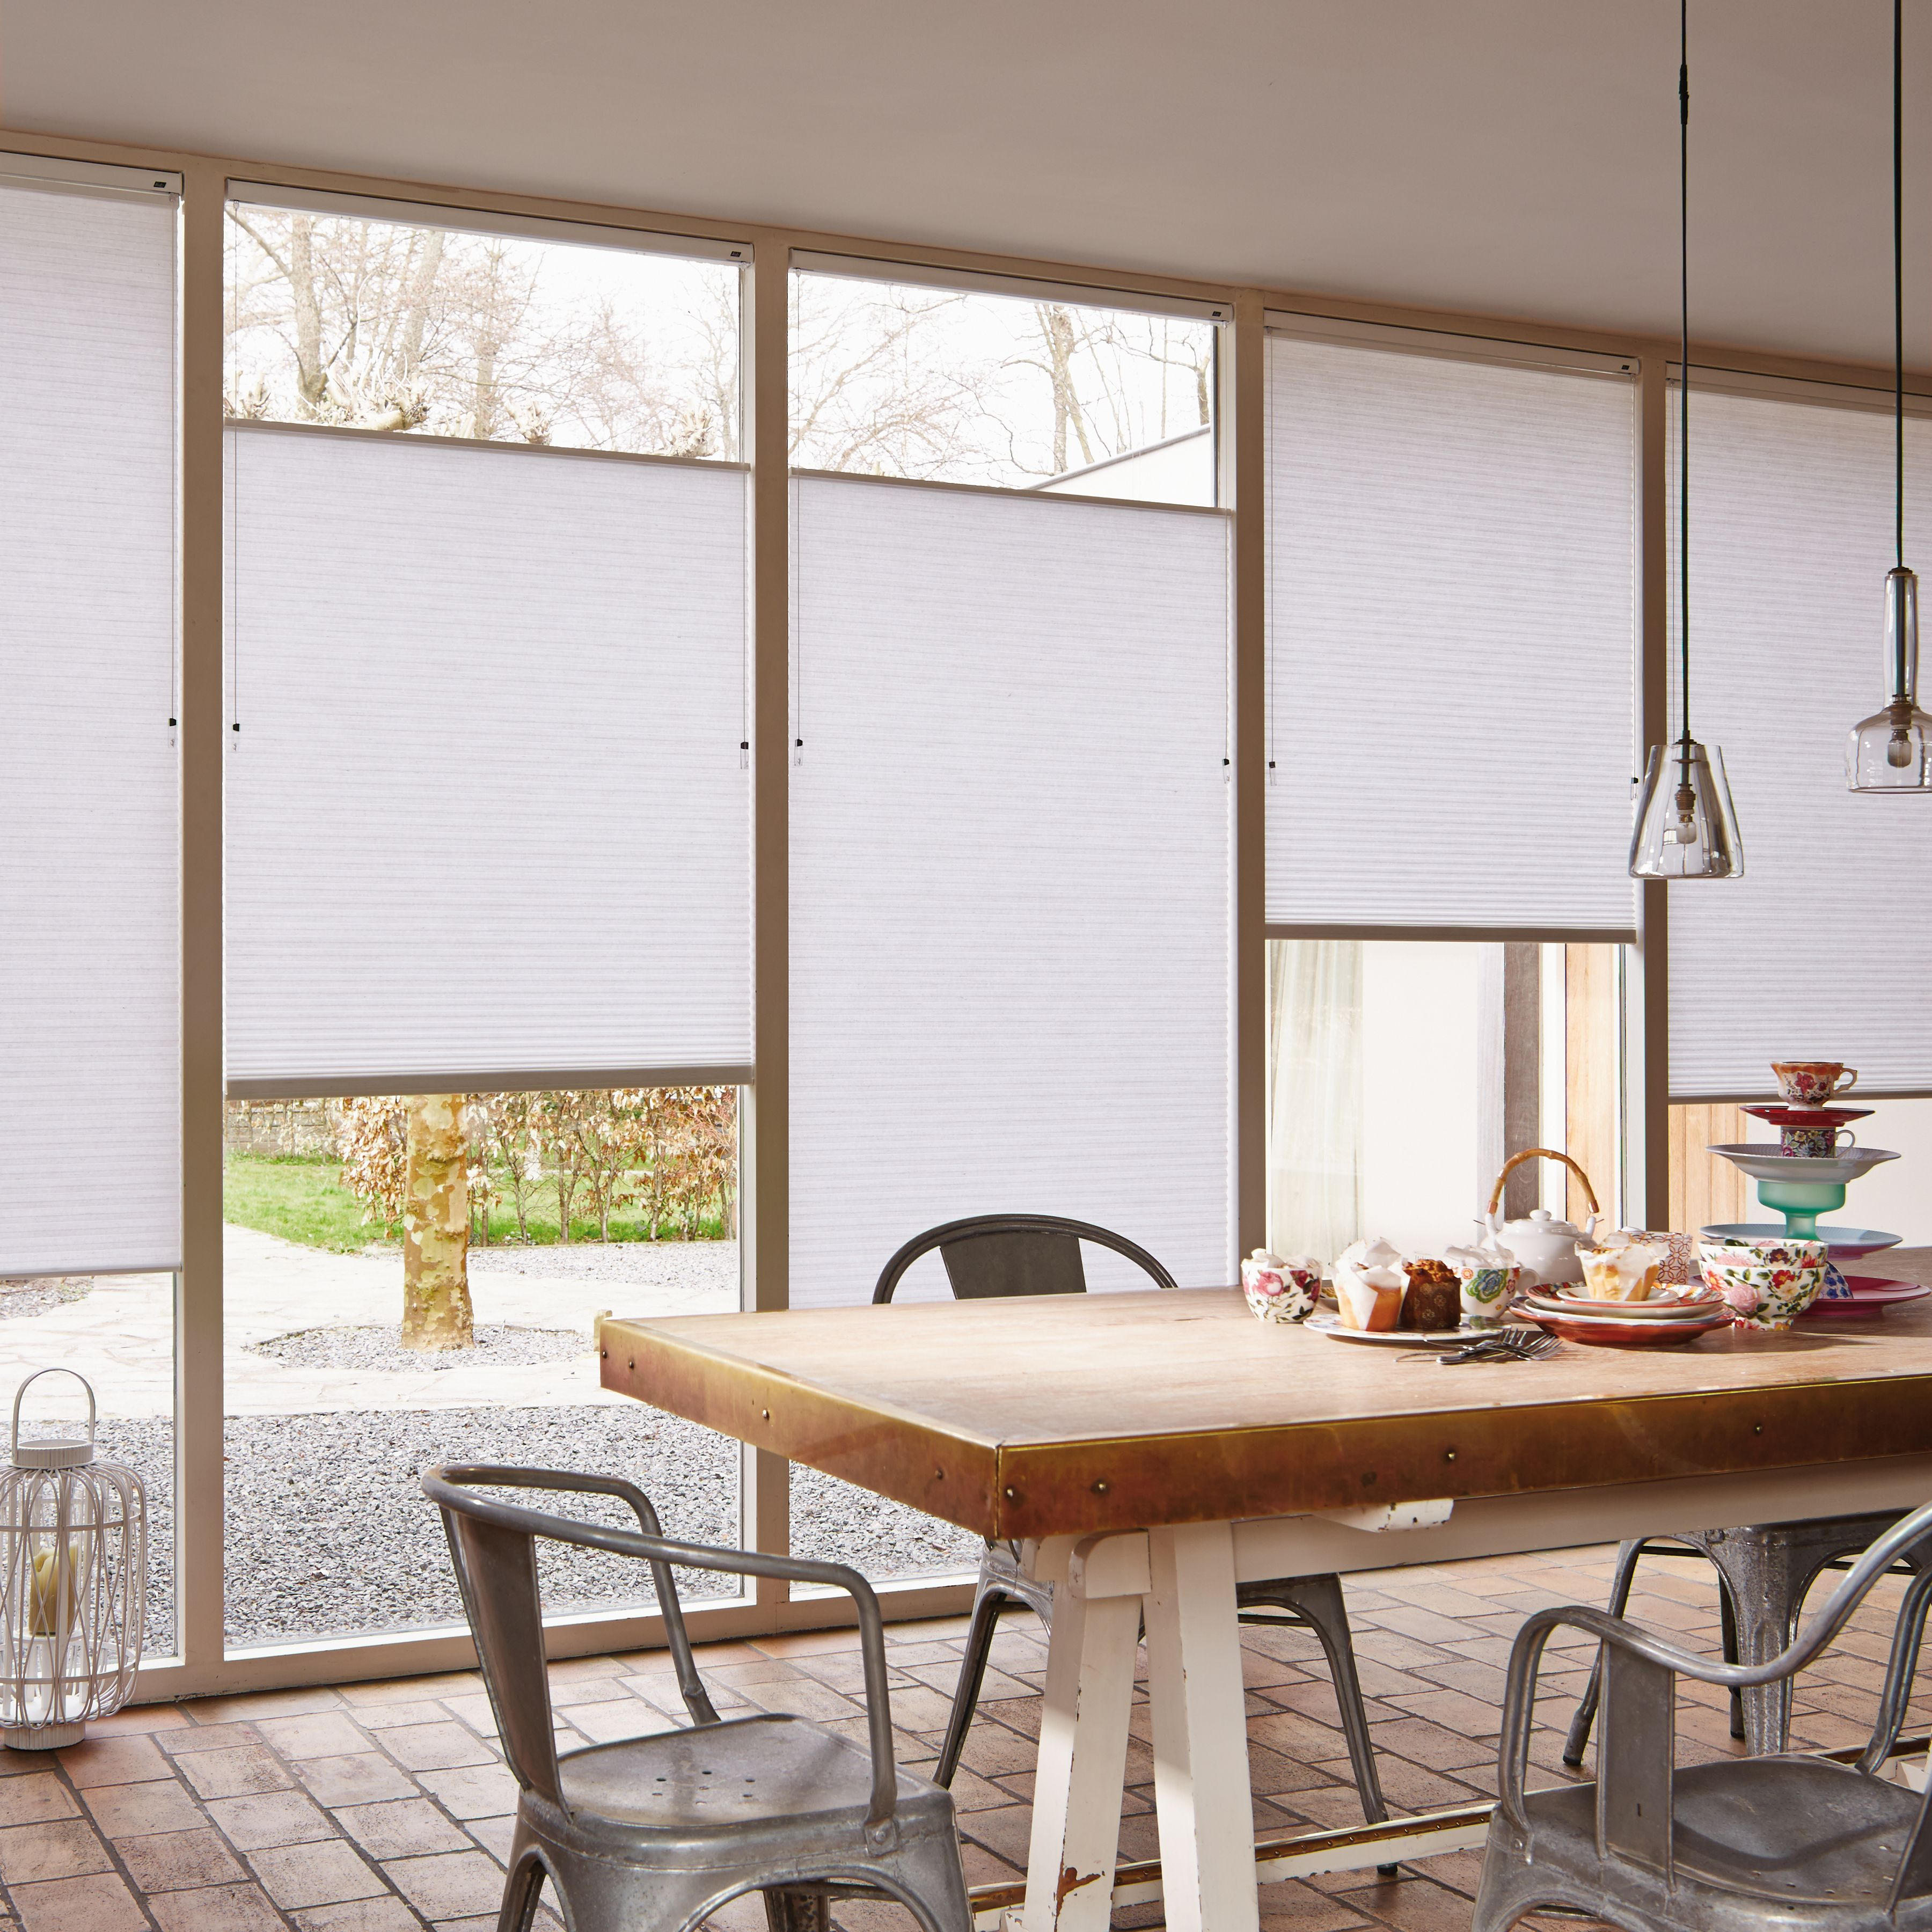 roller shades shade blinds img com nikkidesigns and budget hard blind